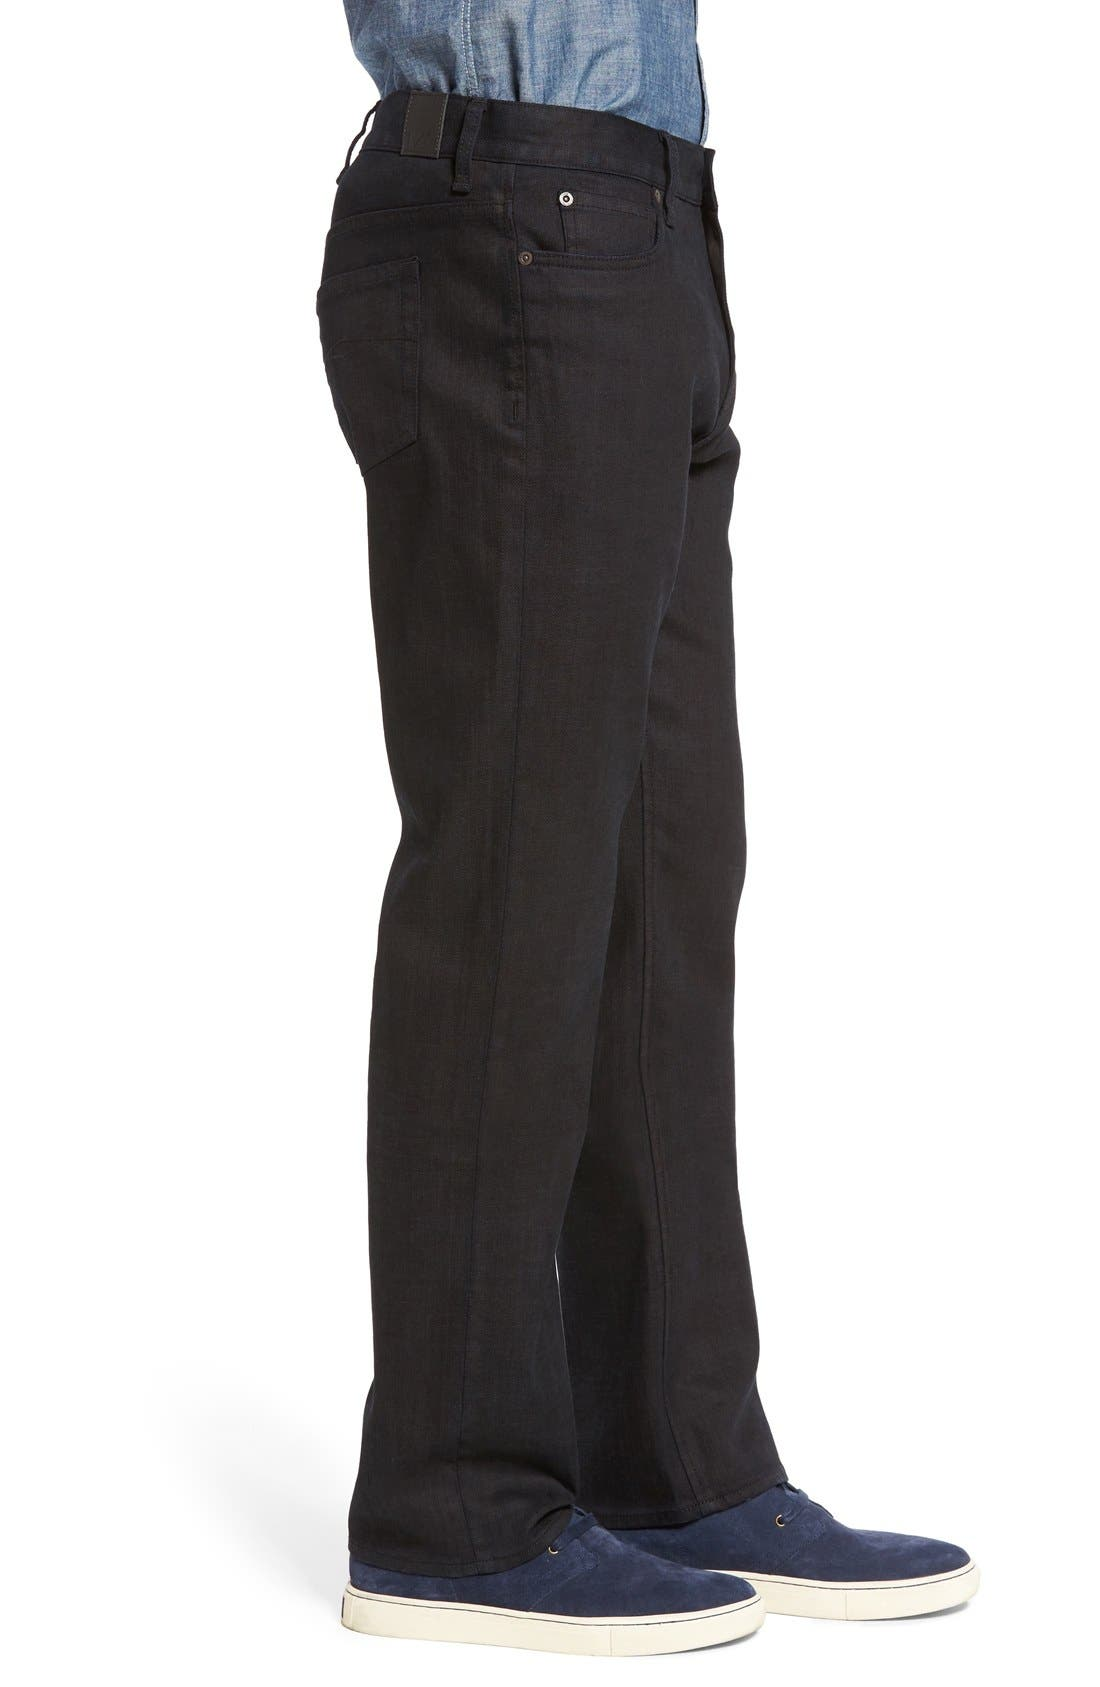 Greenwood Relaxed Fit Jeans,                             Alternate thumbnail 5, color,